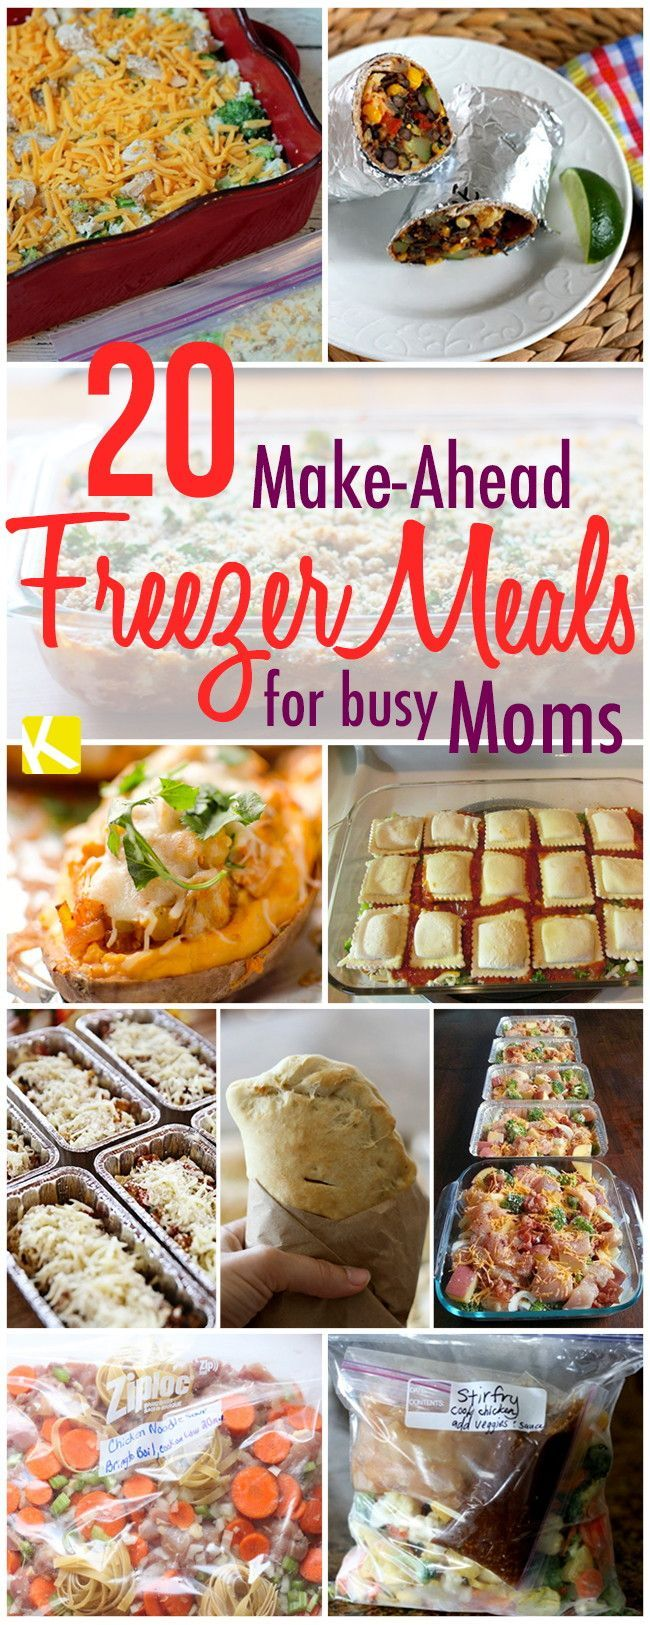 Make-Ahead Freezer Dinners for Busy Moms 20 Make-Ahead Freezer Dinners for Busy Moms- some meals not clean eats, but can be tweaked20 Make-Ahead Freezer Dinners for Busy Moms- some meals not clean eats, but can be tweaked